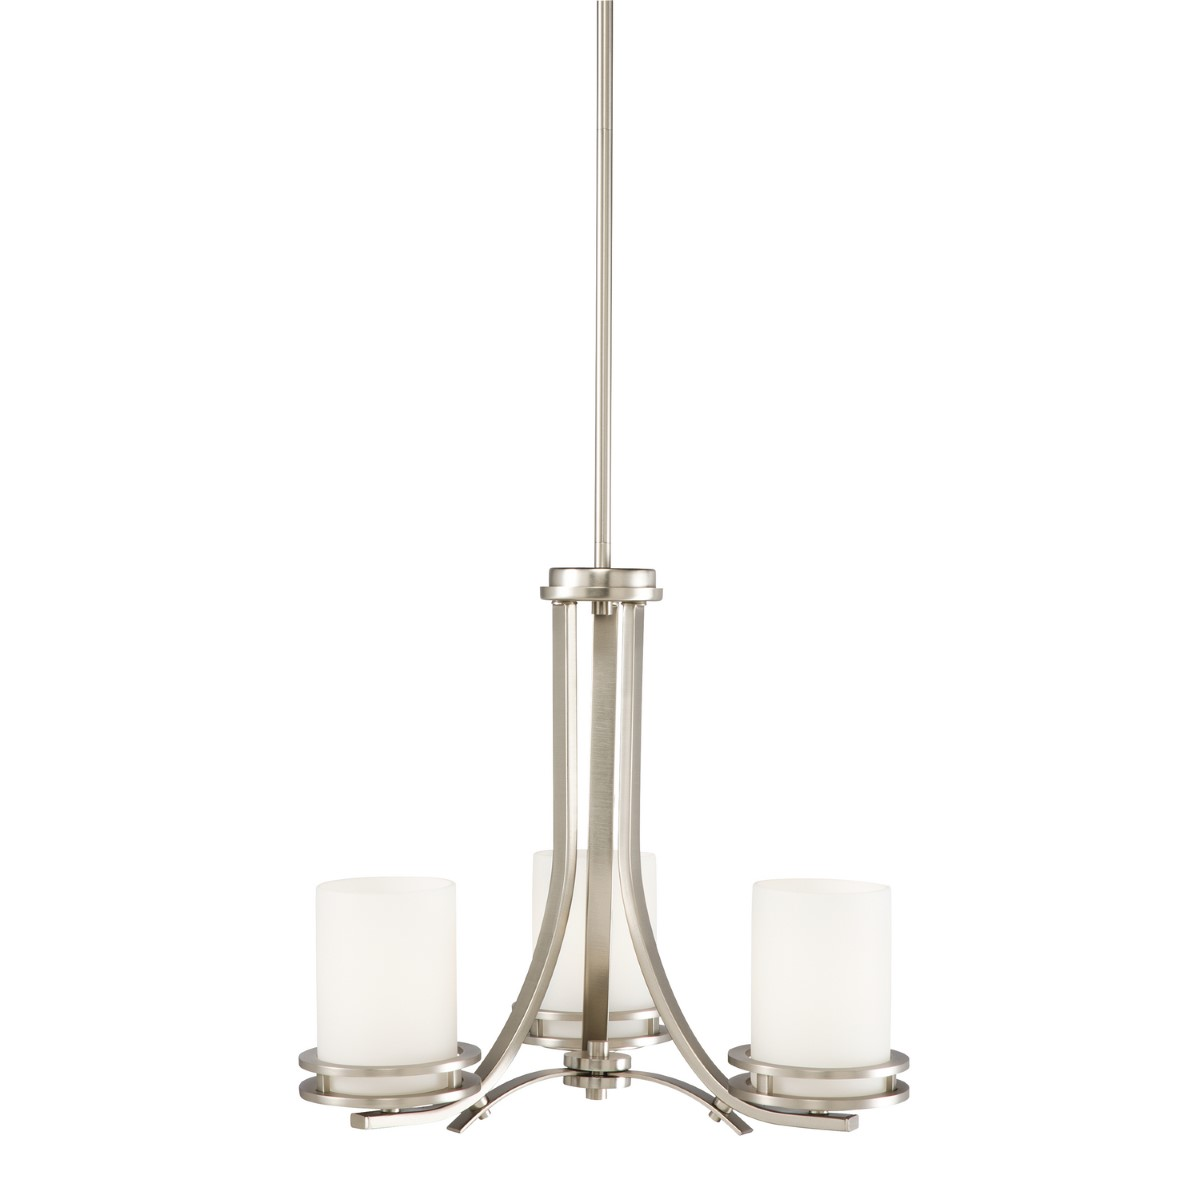 Kichler Hendrik Chandelier with Satin Etched Cased Opal Shade - Brushed Nickel (1671NI)